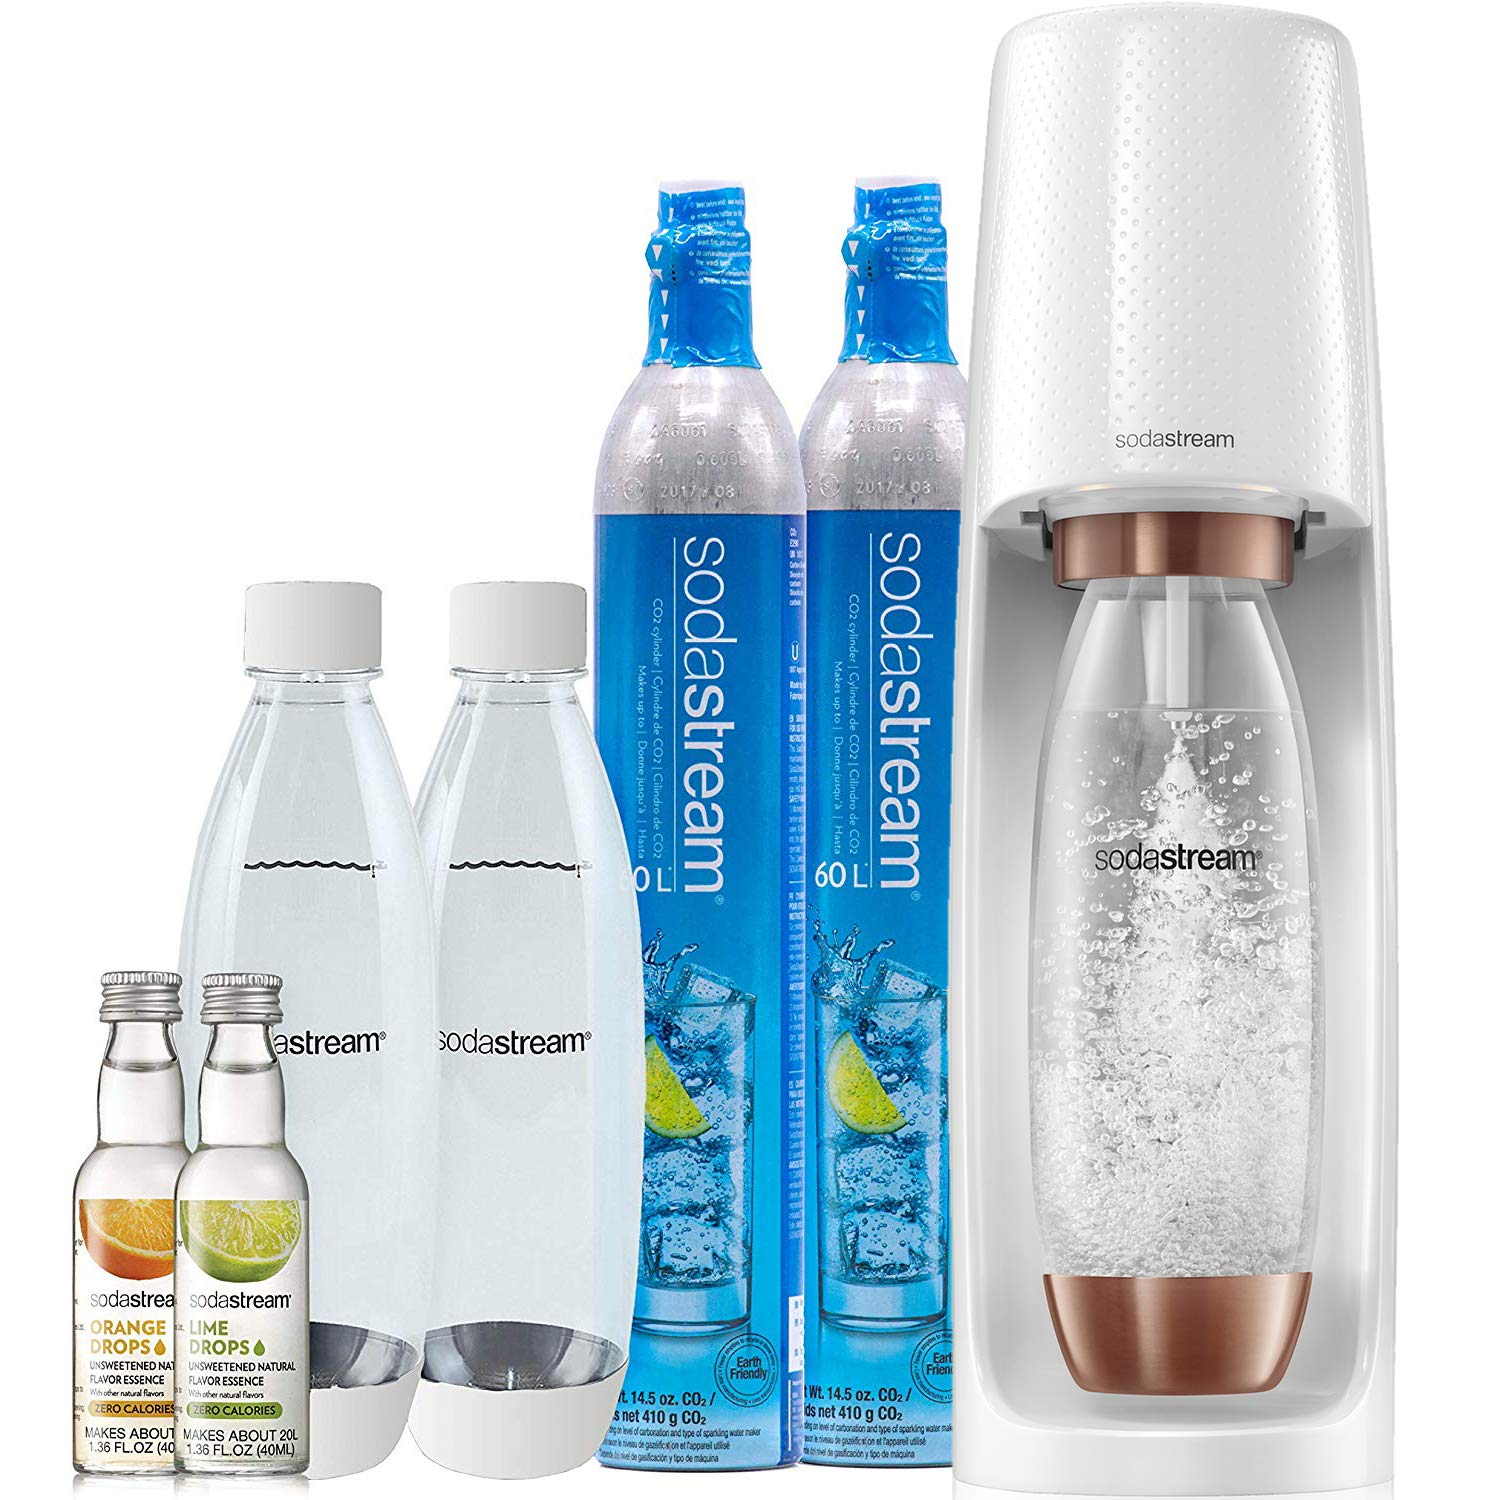 Everything your loved one needs to feed their sparkling water cravings is in this SodaStream bundle — CO2 cylinders, extra bottles, zero-calorie fruit drops, and the Sparkling Water Maker. The maker comes in several great colors, but the chic white with rose gold accents is certain to go in any kitchen seamlessly.